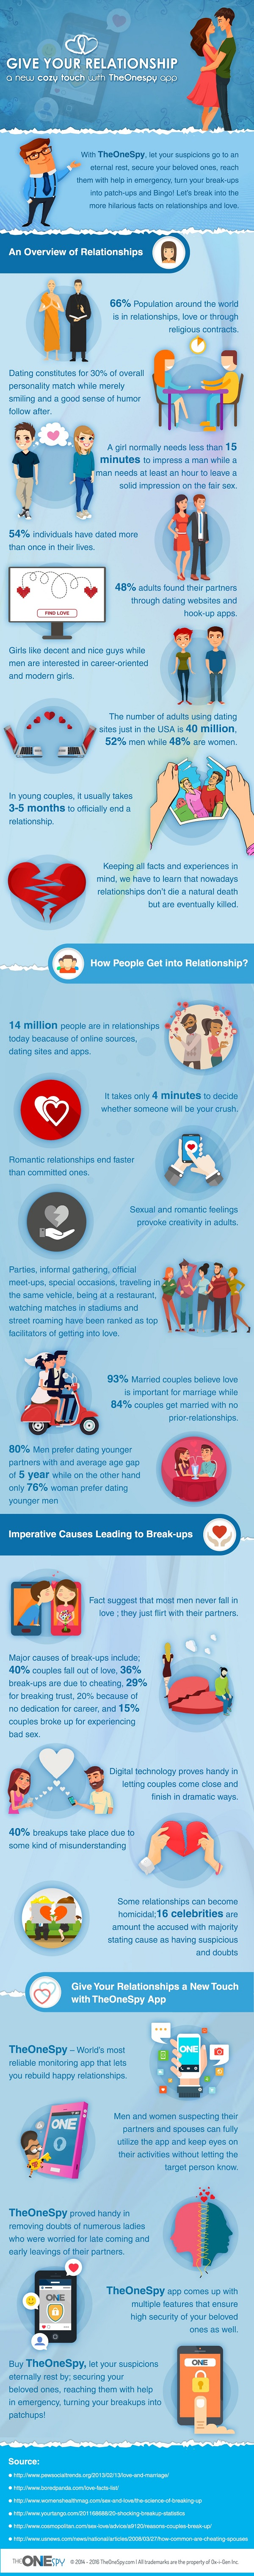 give your relationship a cozy touch infographic